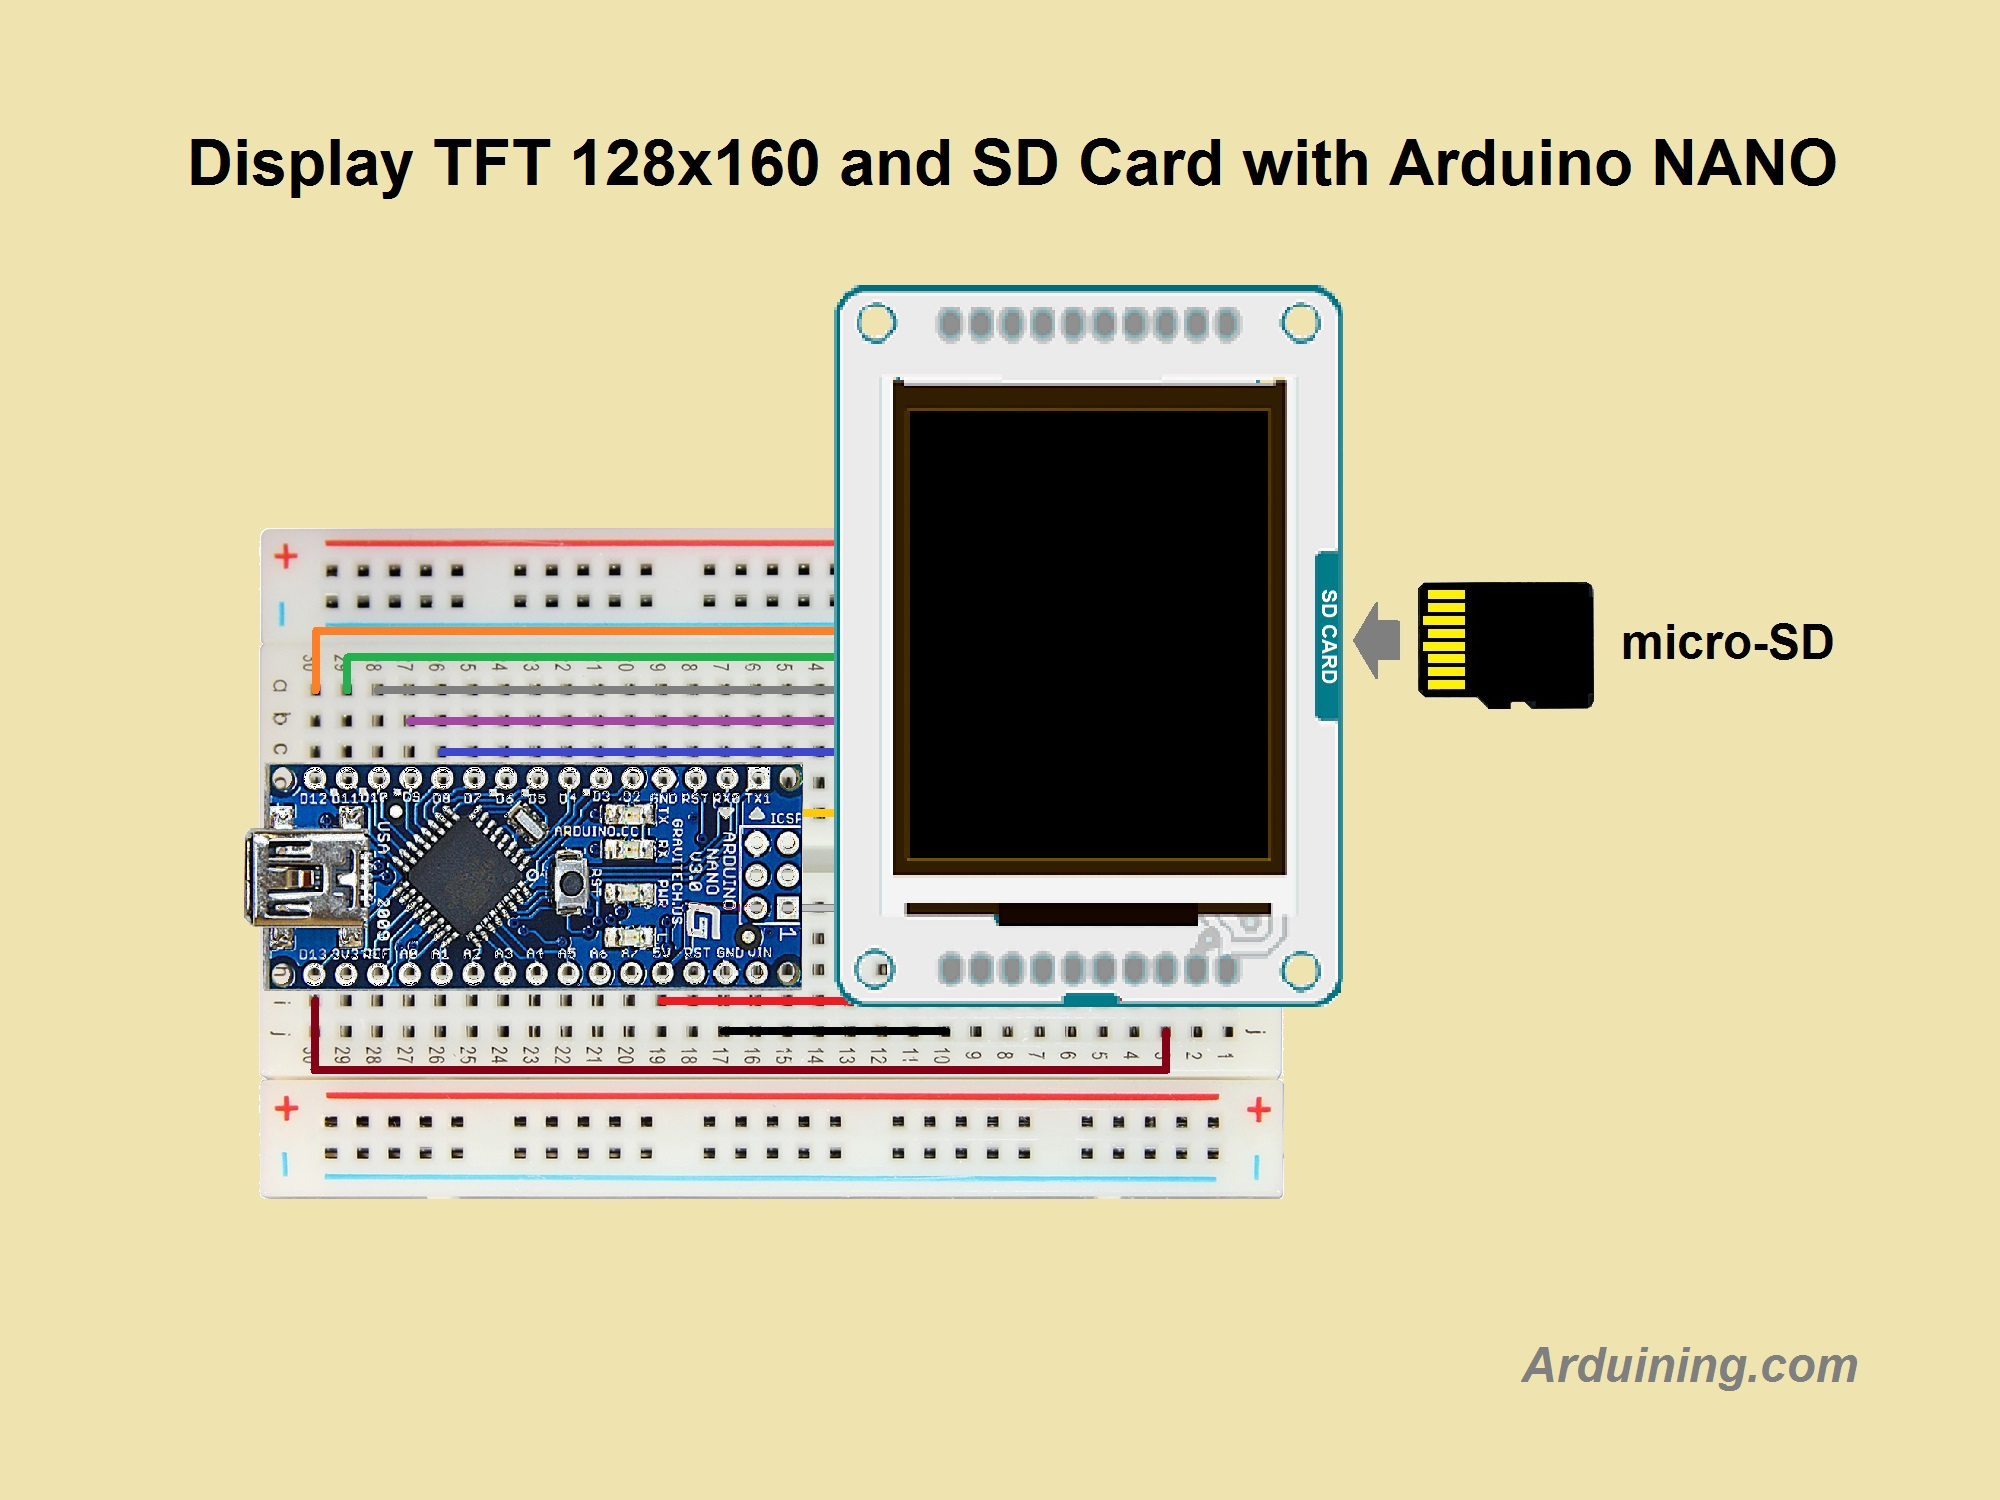 Tft 7735 Wiring Diagram Free Download Ccc Display To Arduino Nano Arduining Residential Electrical Diagrams At